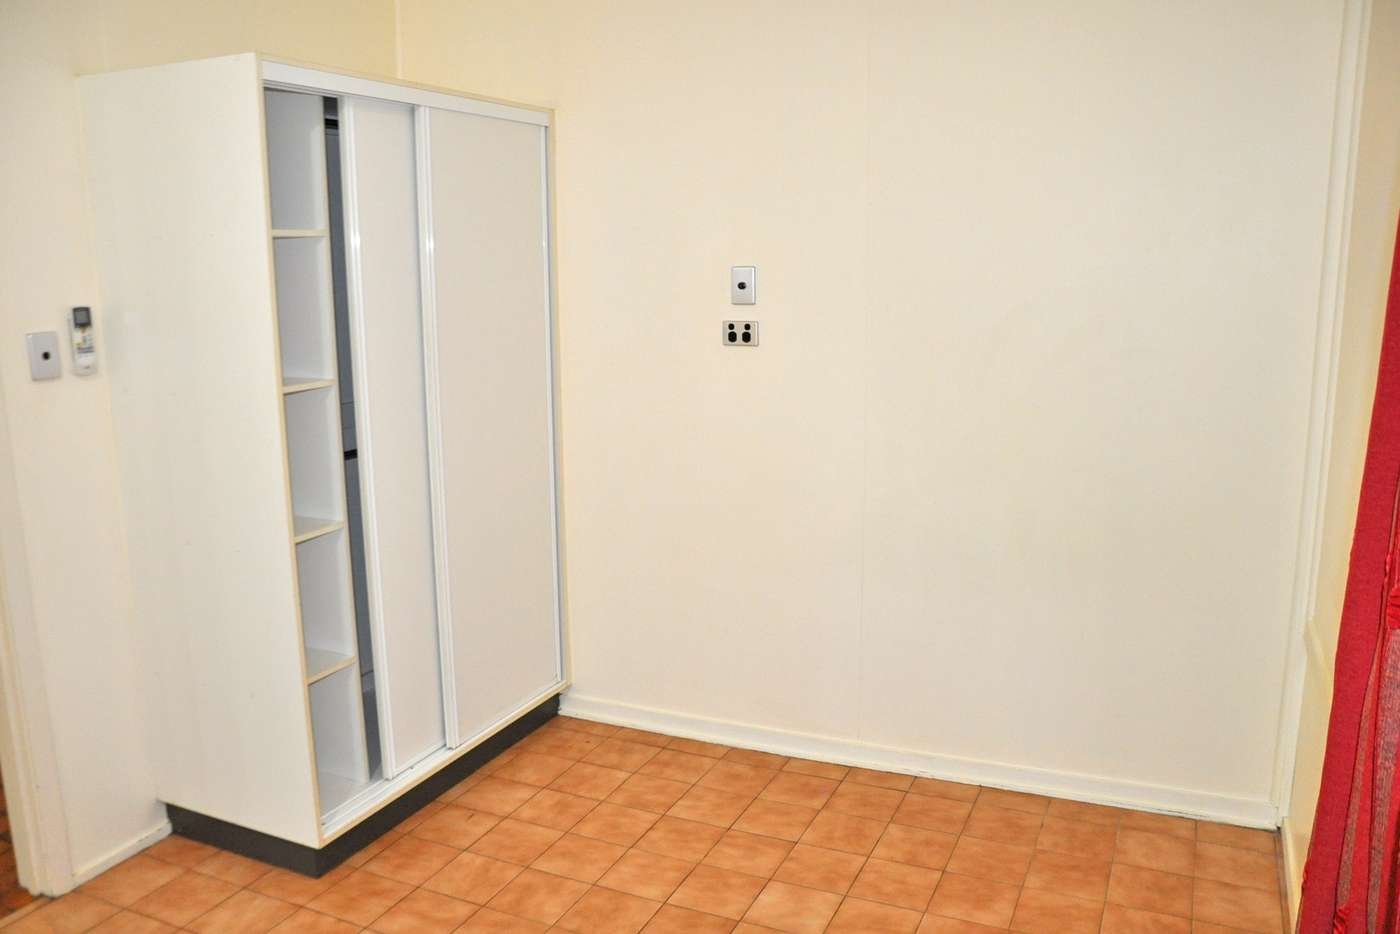 Sixth view of Homely house listing, 14 Downs Street, Mareeba QLD 4880